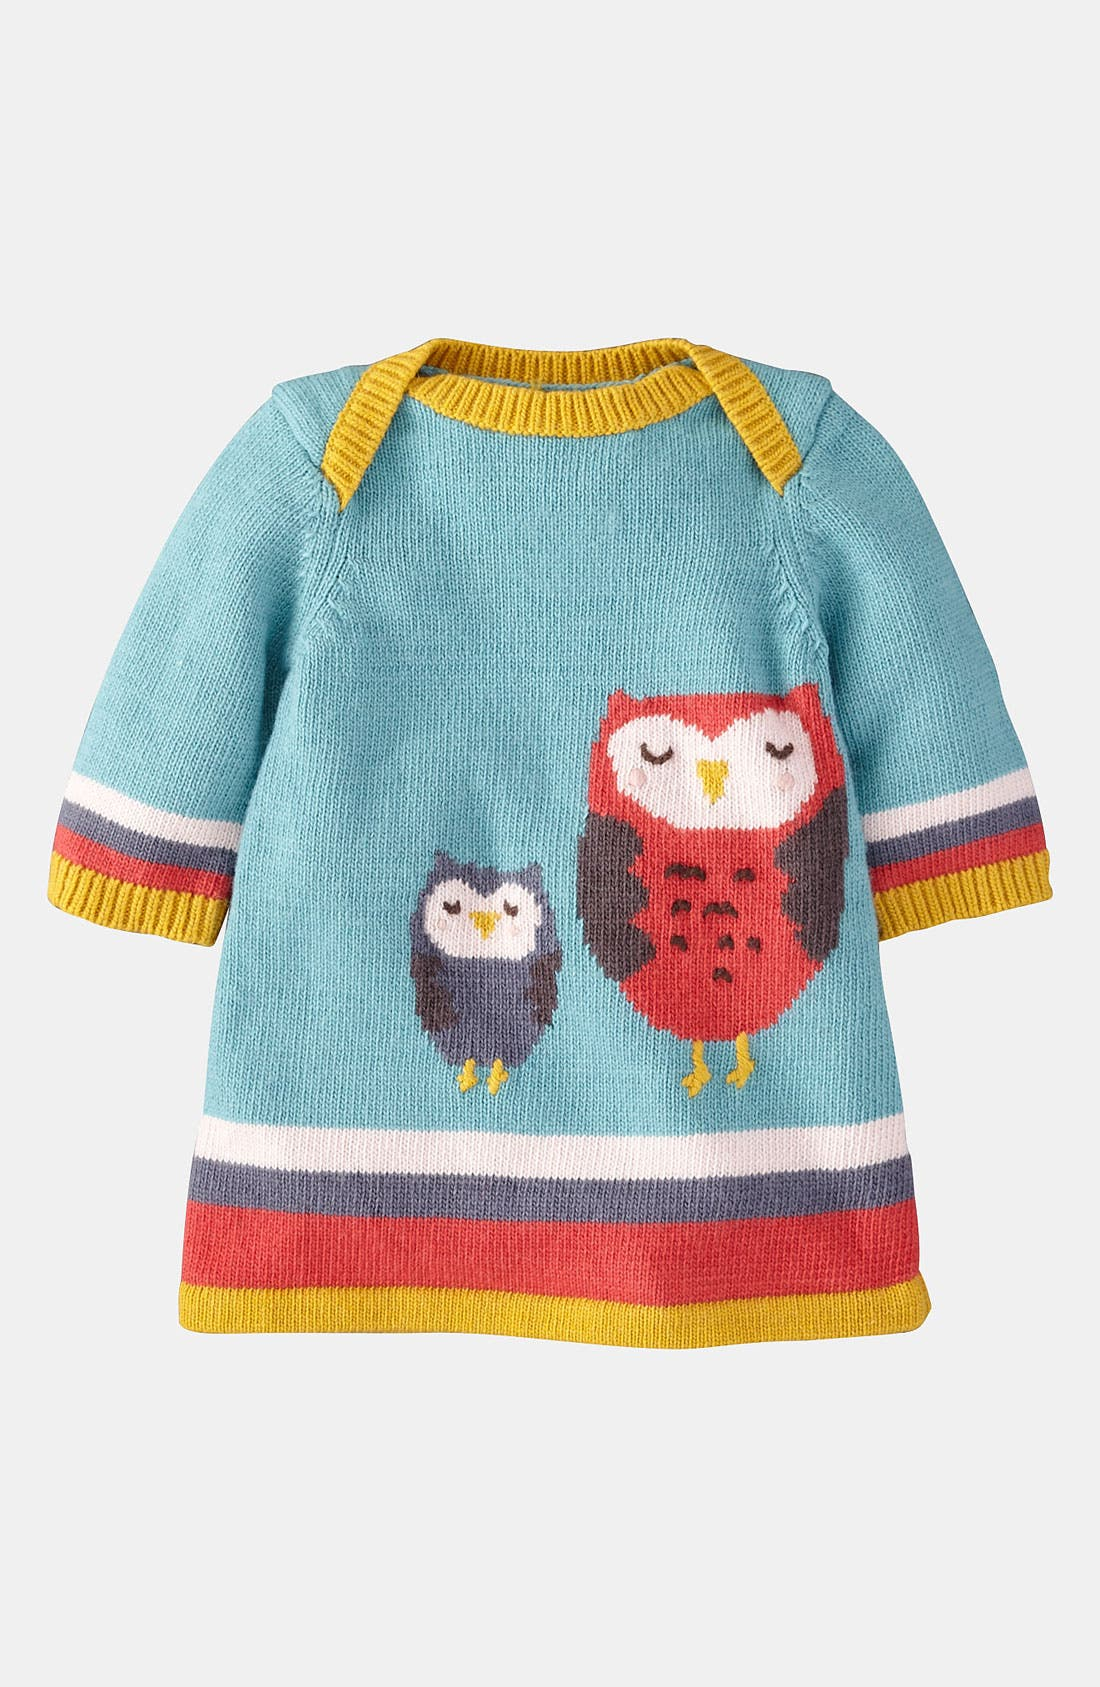 Alternate Image 1 Selected - Mini Boden 'My Baby' Knit Dress (Infant)